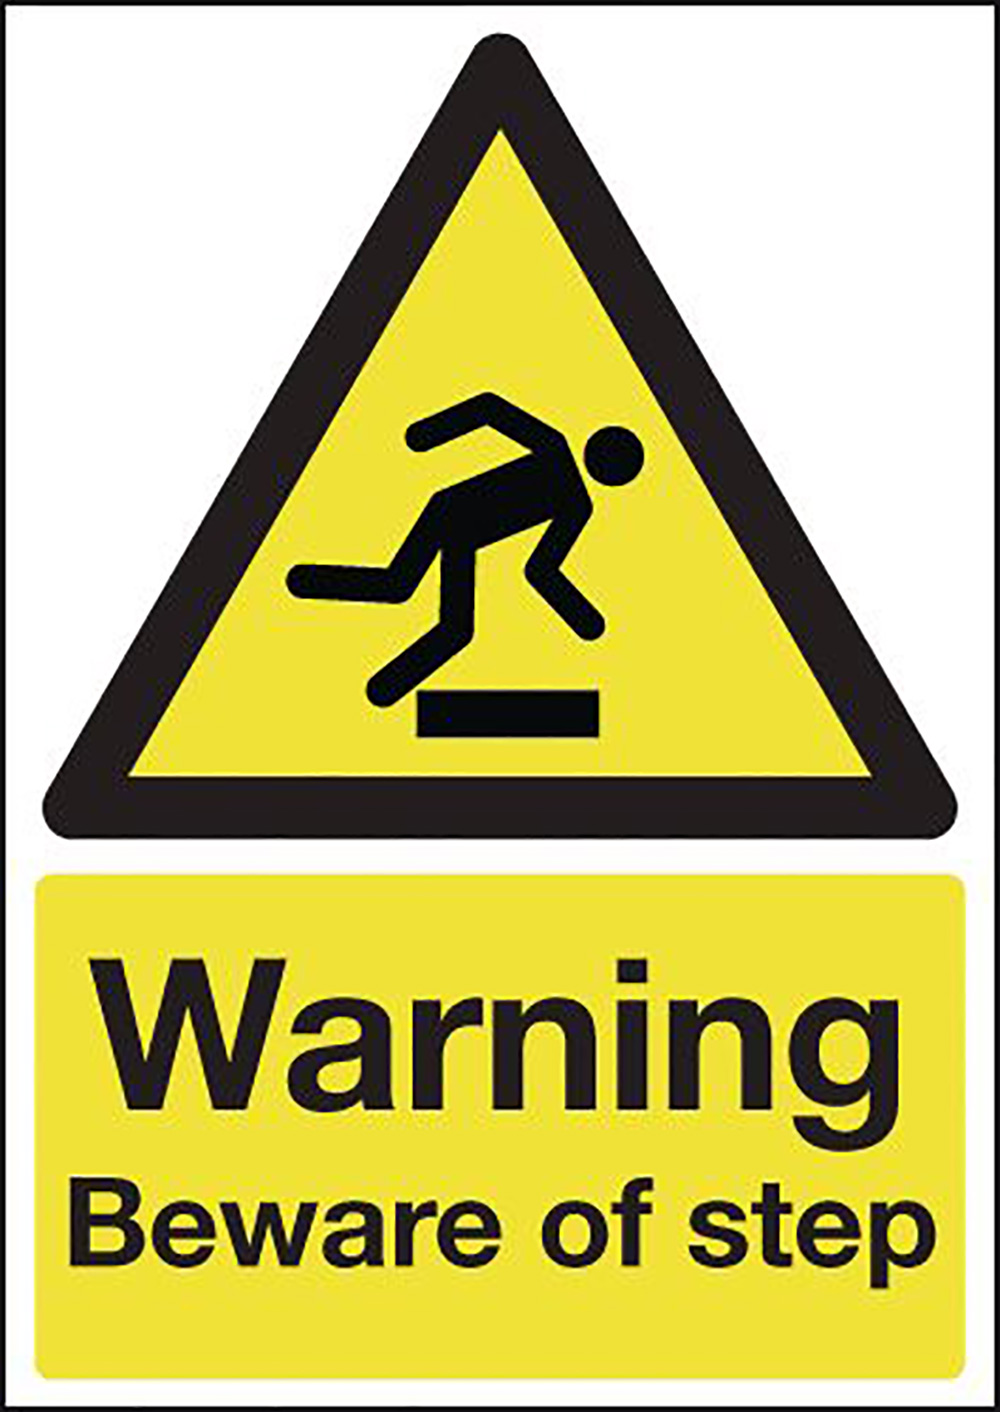 Warning Beware of Step 210x148mm Self Adhesive Vinyl Safety Sign